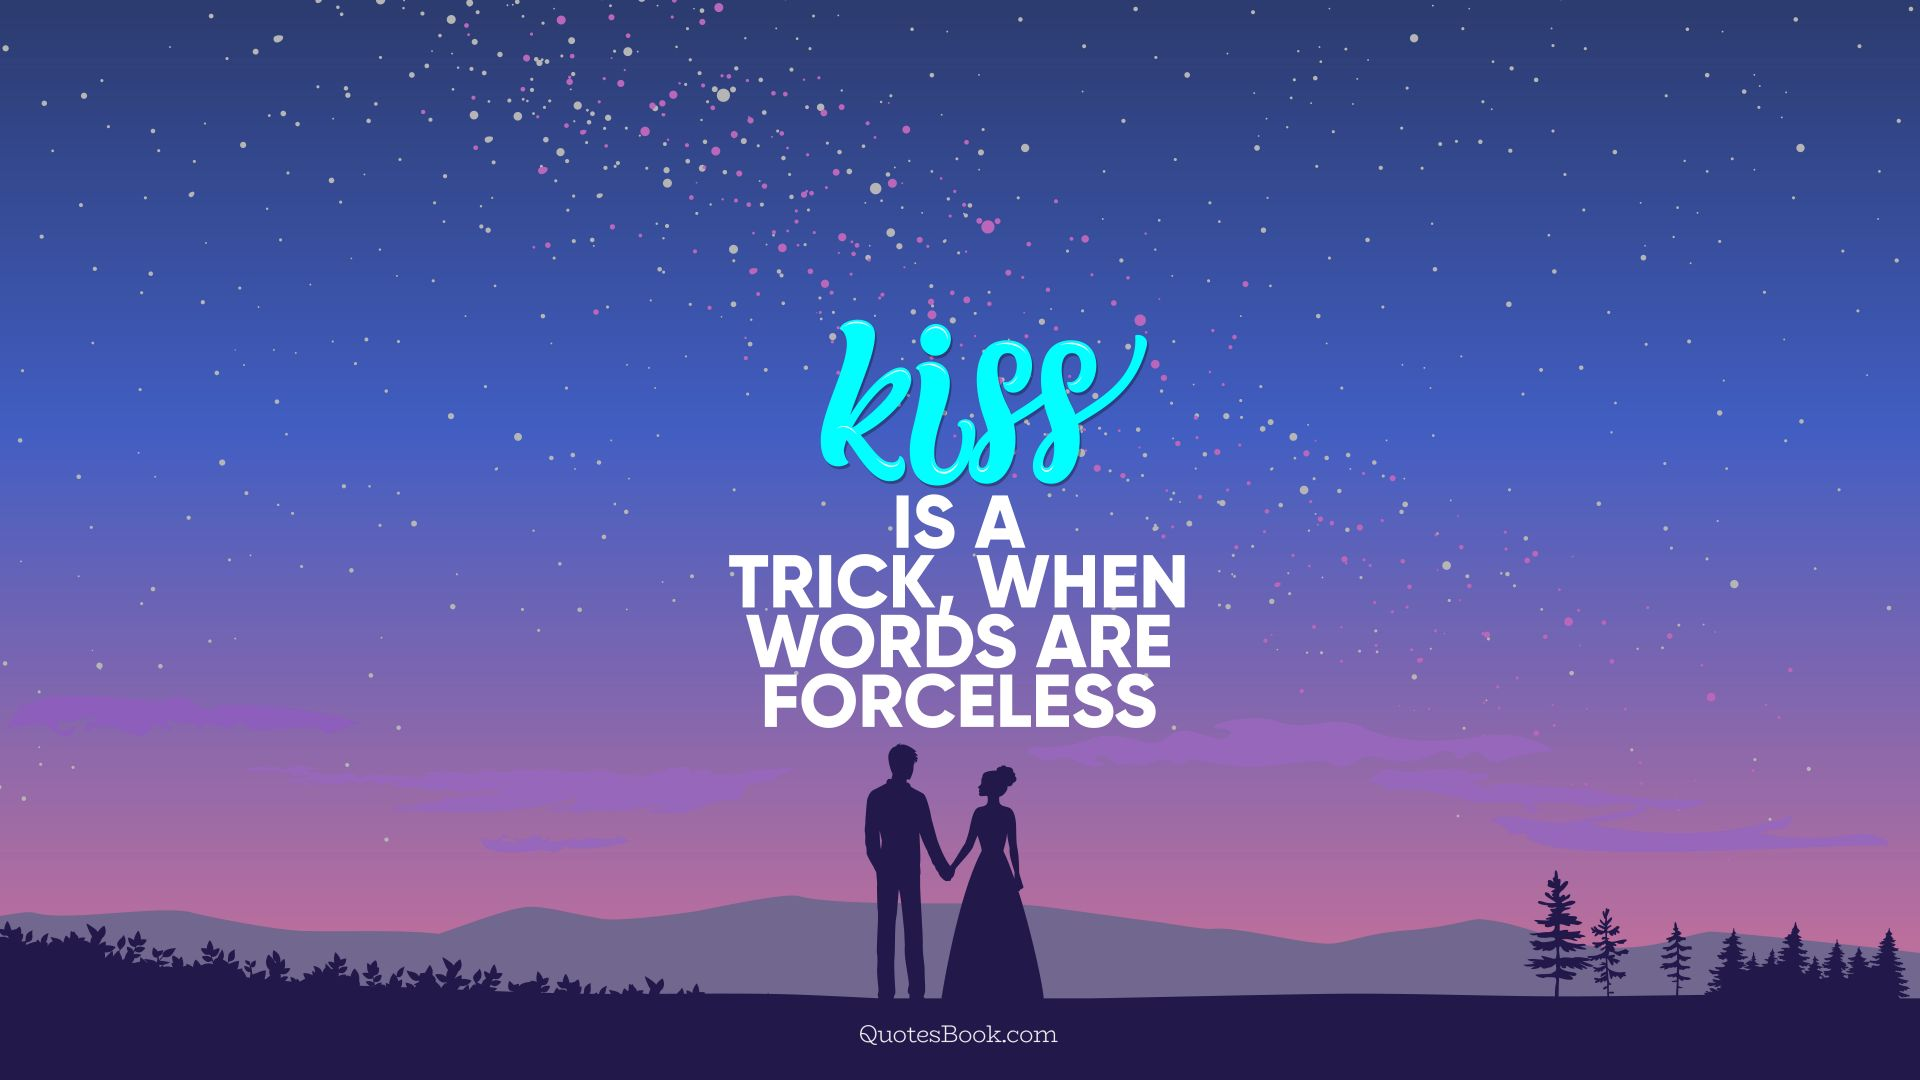 Kiss is a trick, when words are forceless. - Quote by QuotesBook